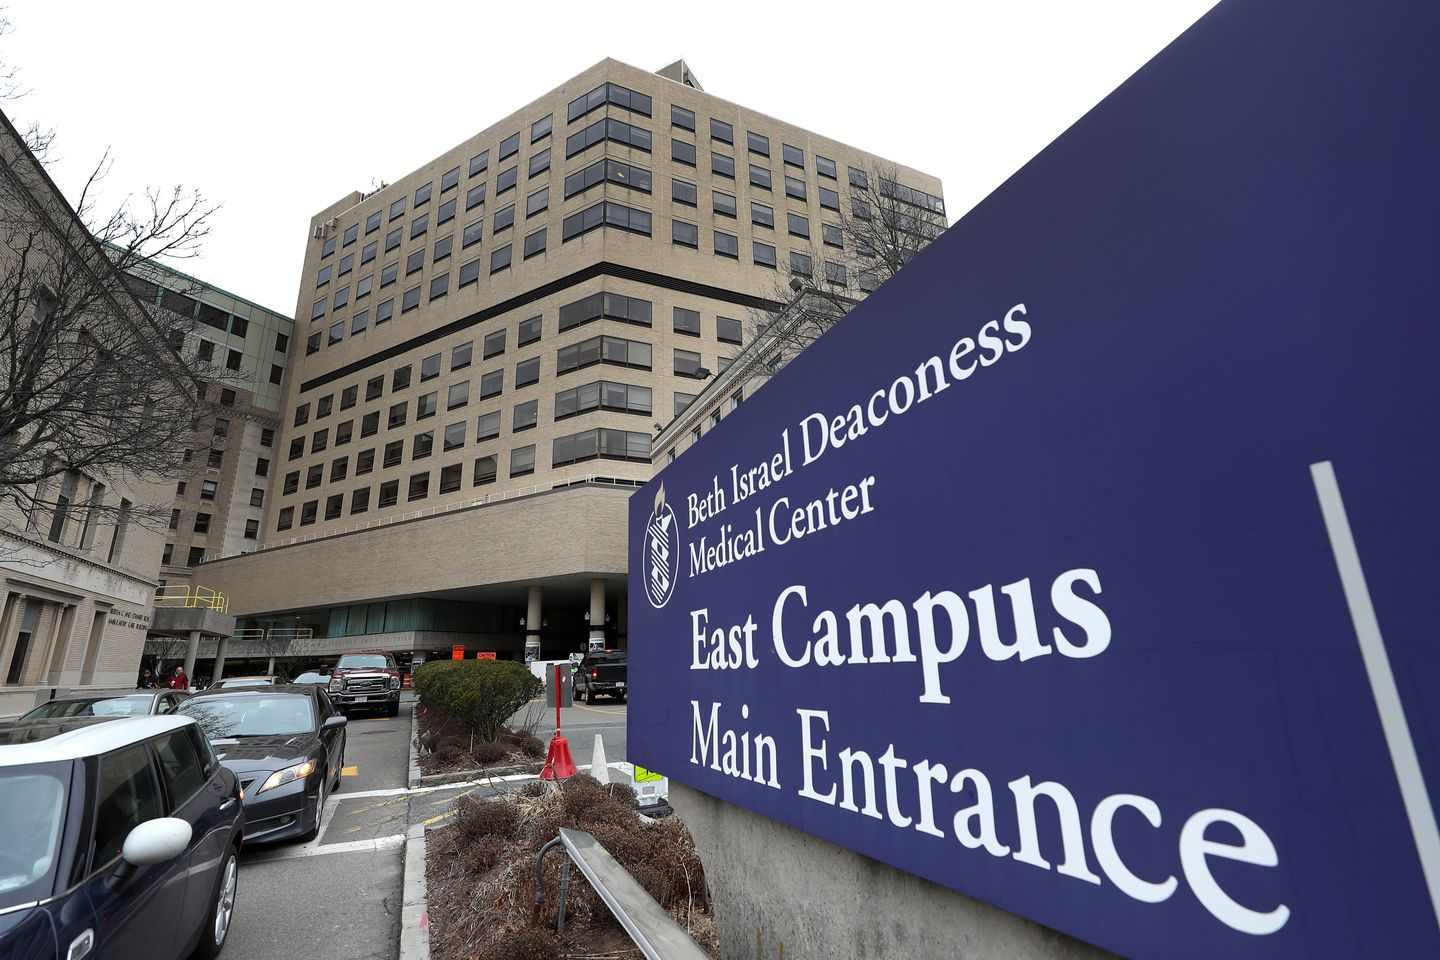 An accomplished Chinese medical student is alleged to have stolen vials of research specimens from his lab at Beth Israel Deaconess Medical Center and tried to smuggle the materials in his suitcase bound for China.